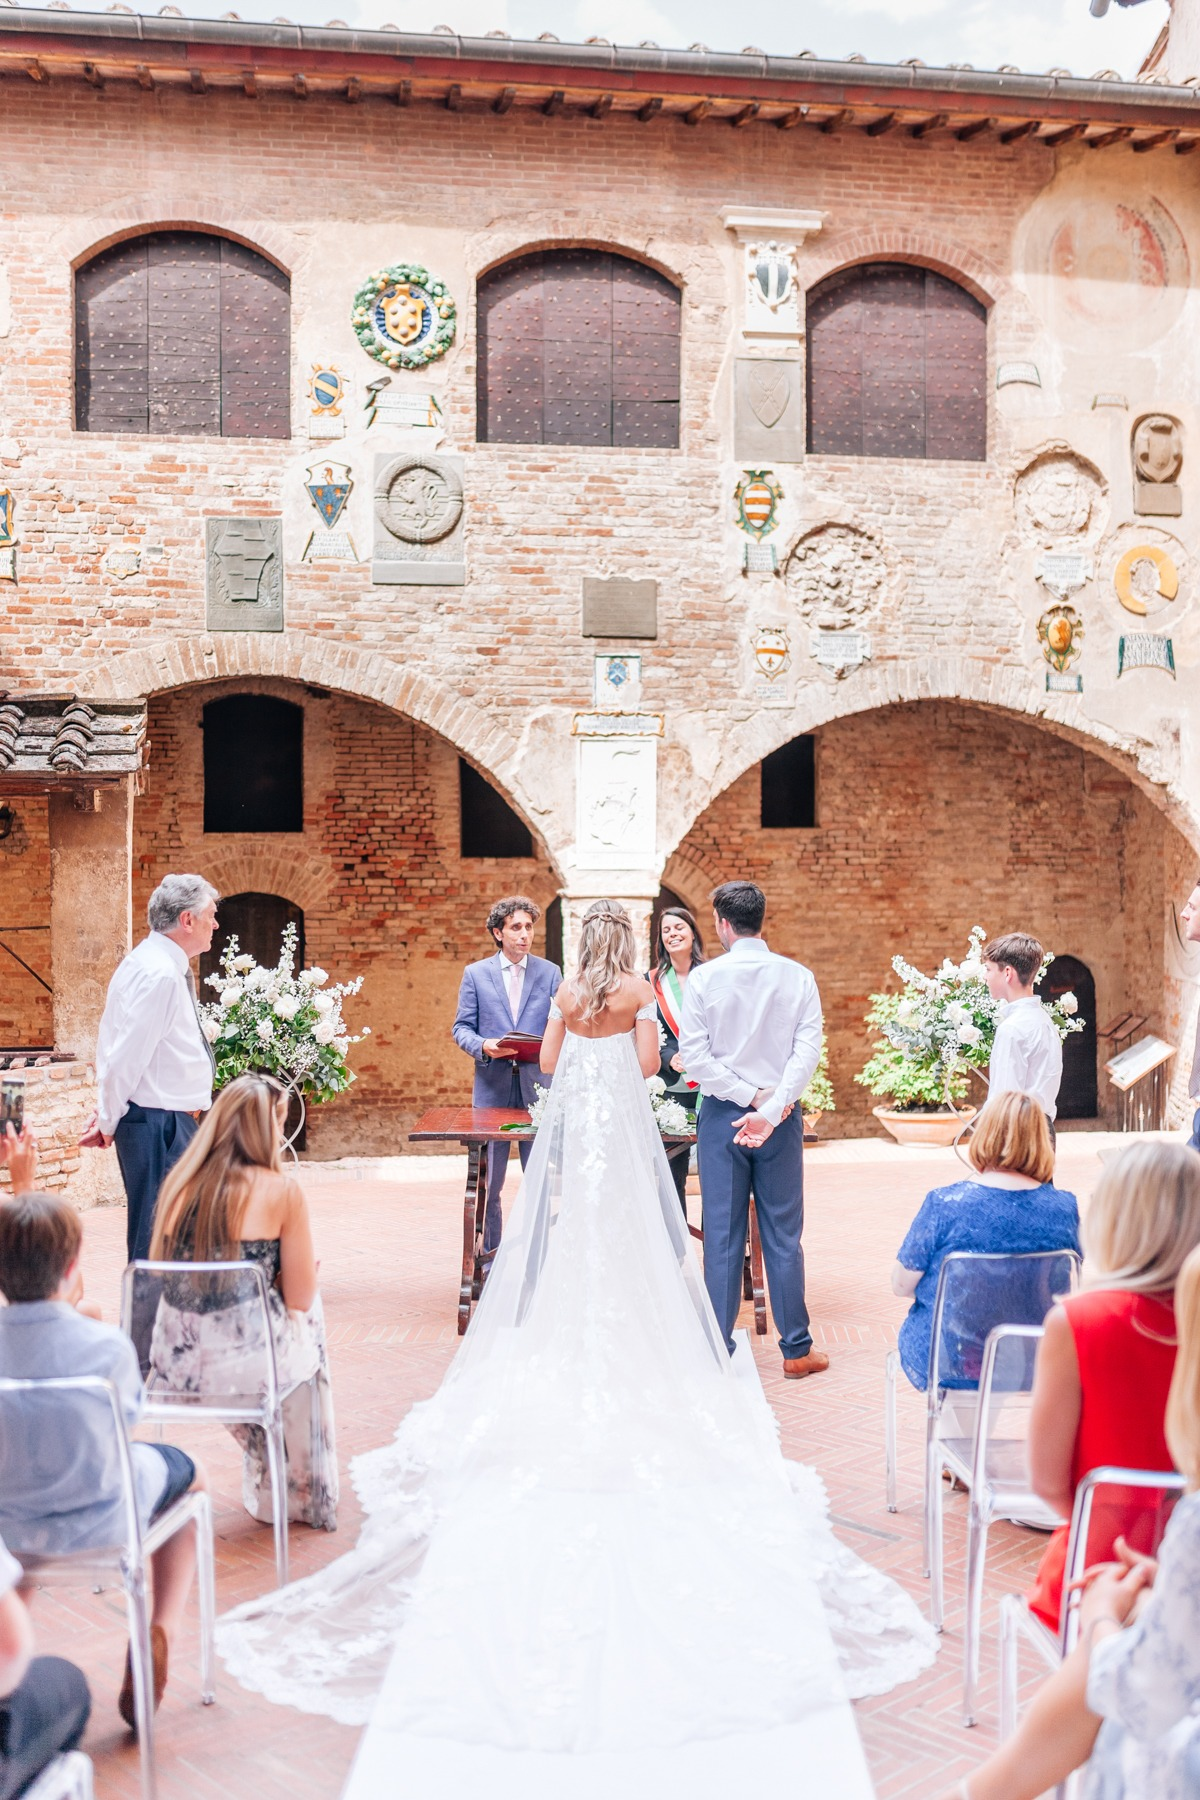 saying I do in Italy